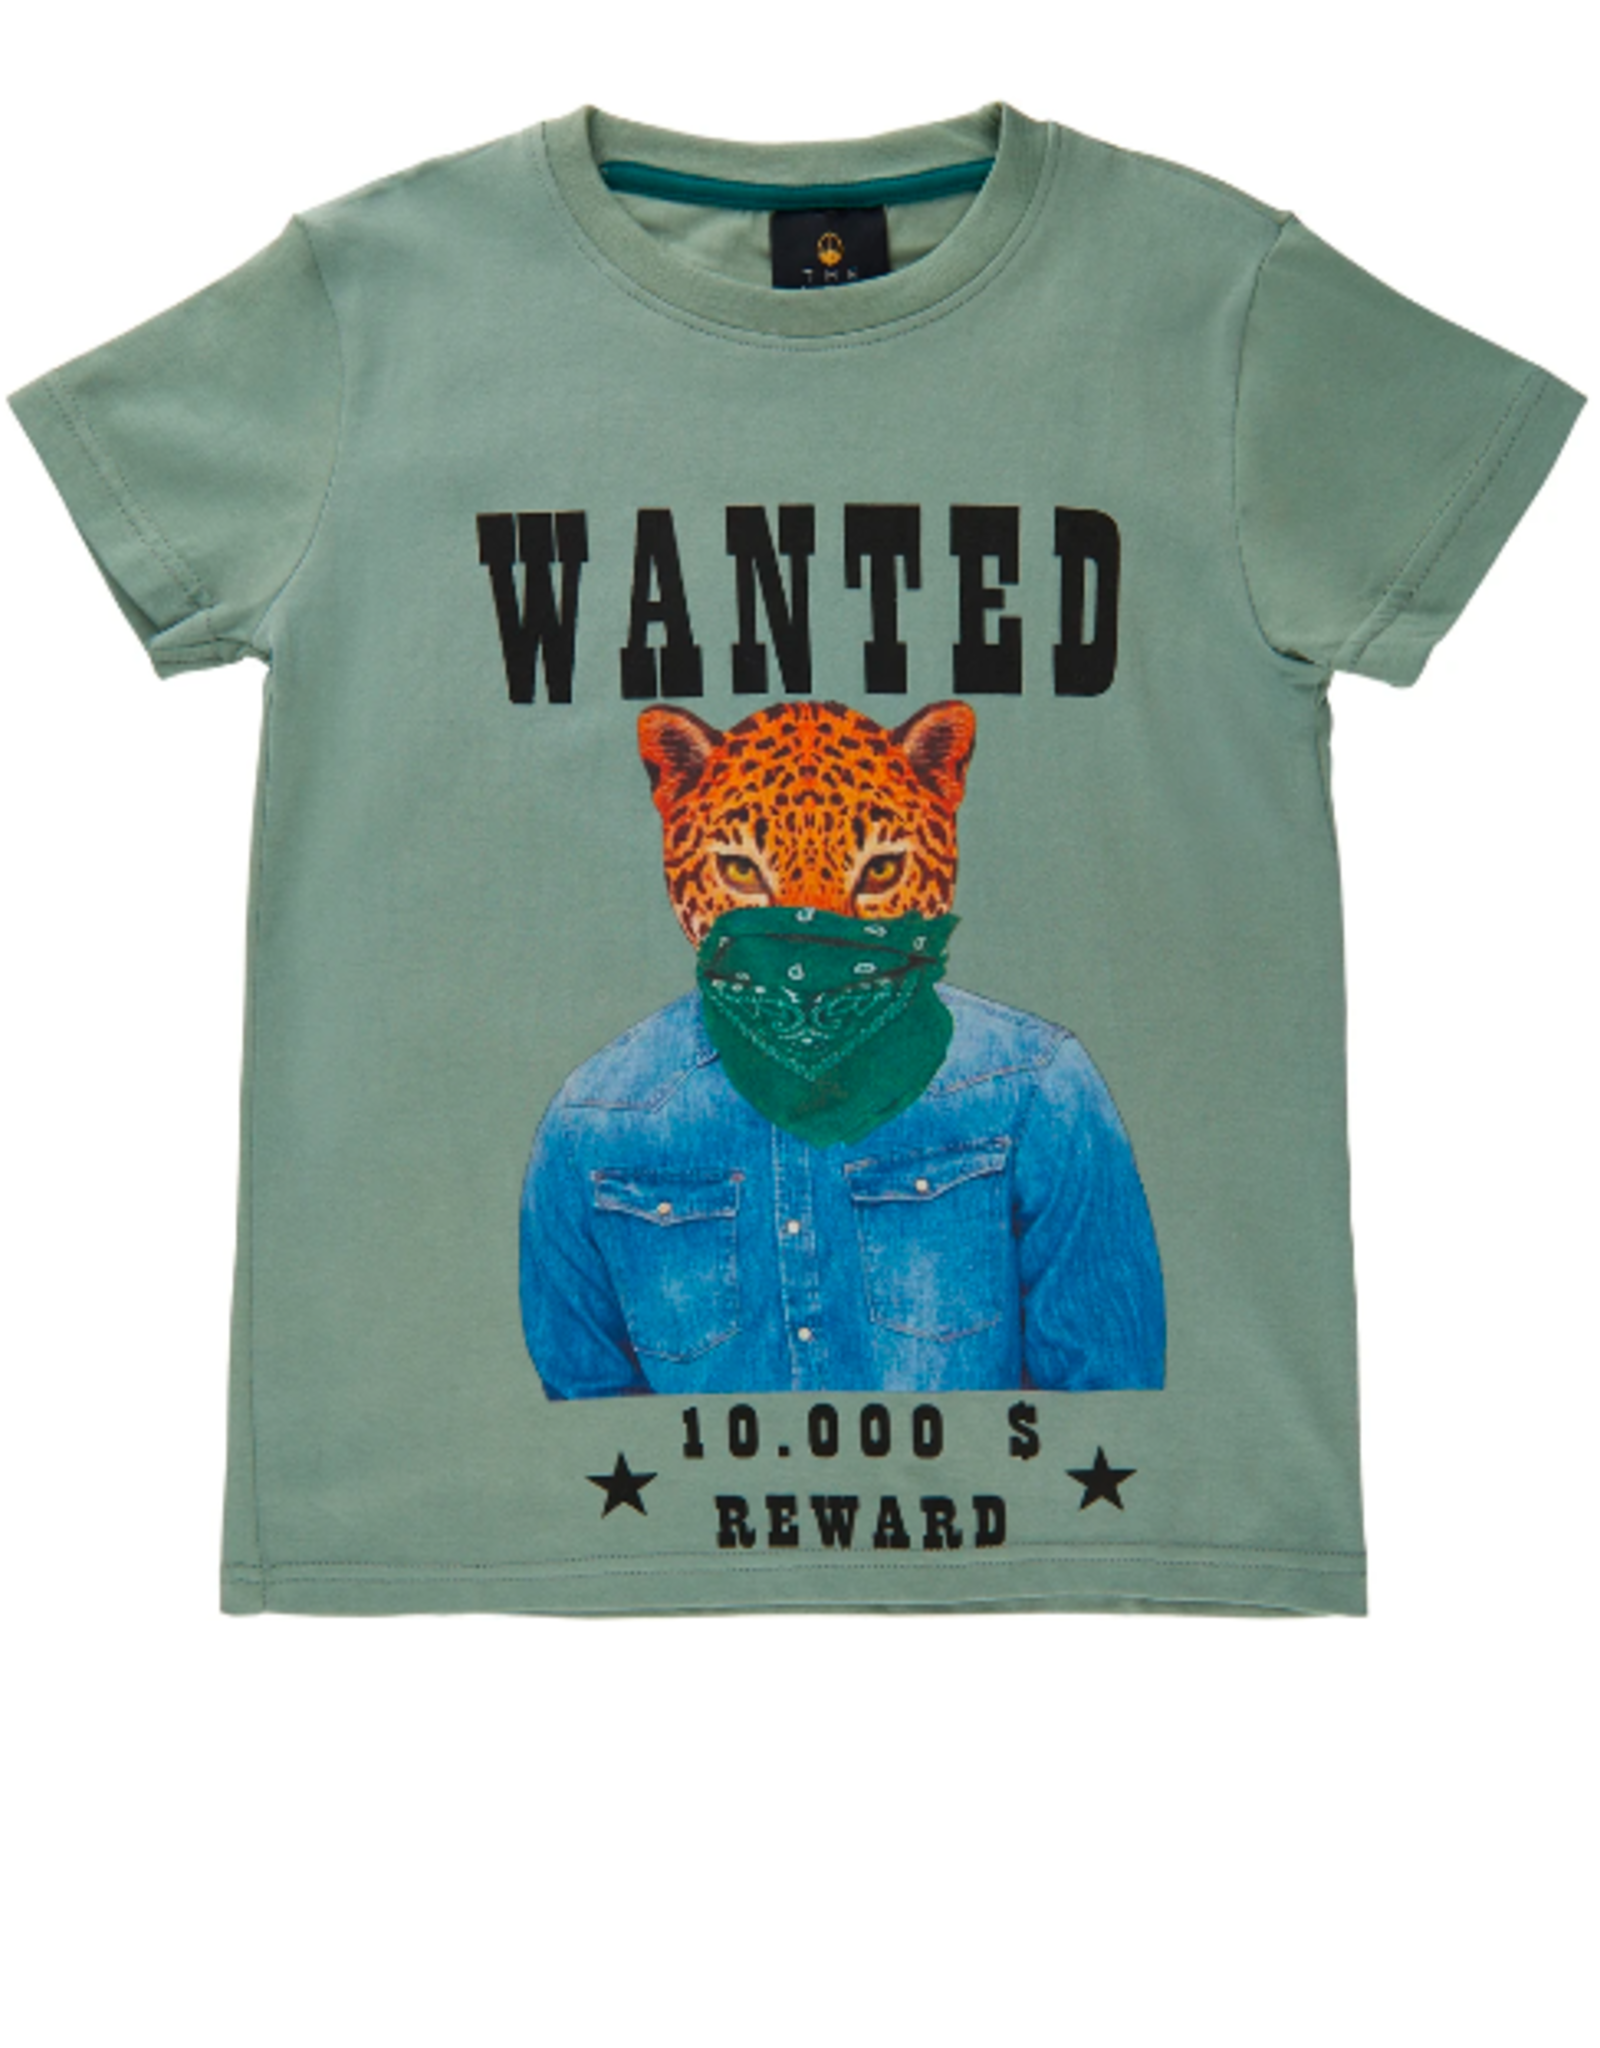 The New T-shirt WANTED